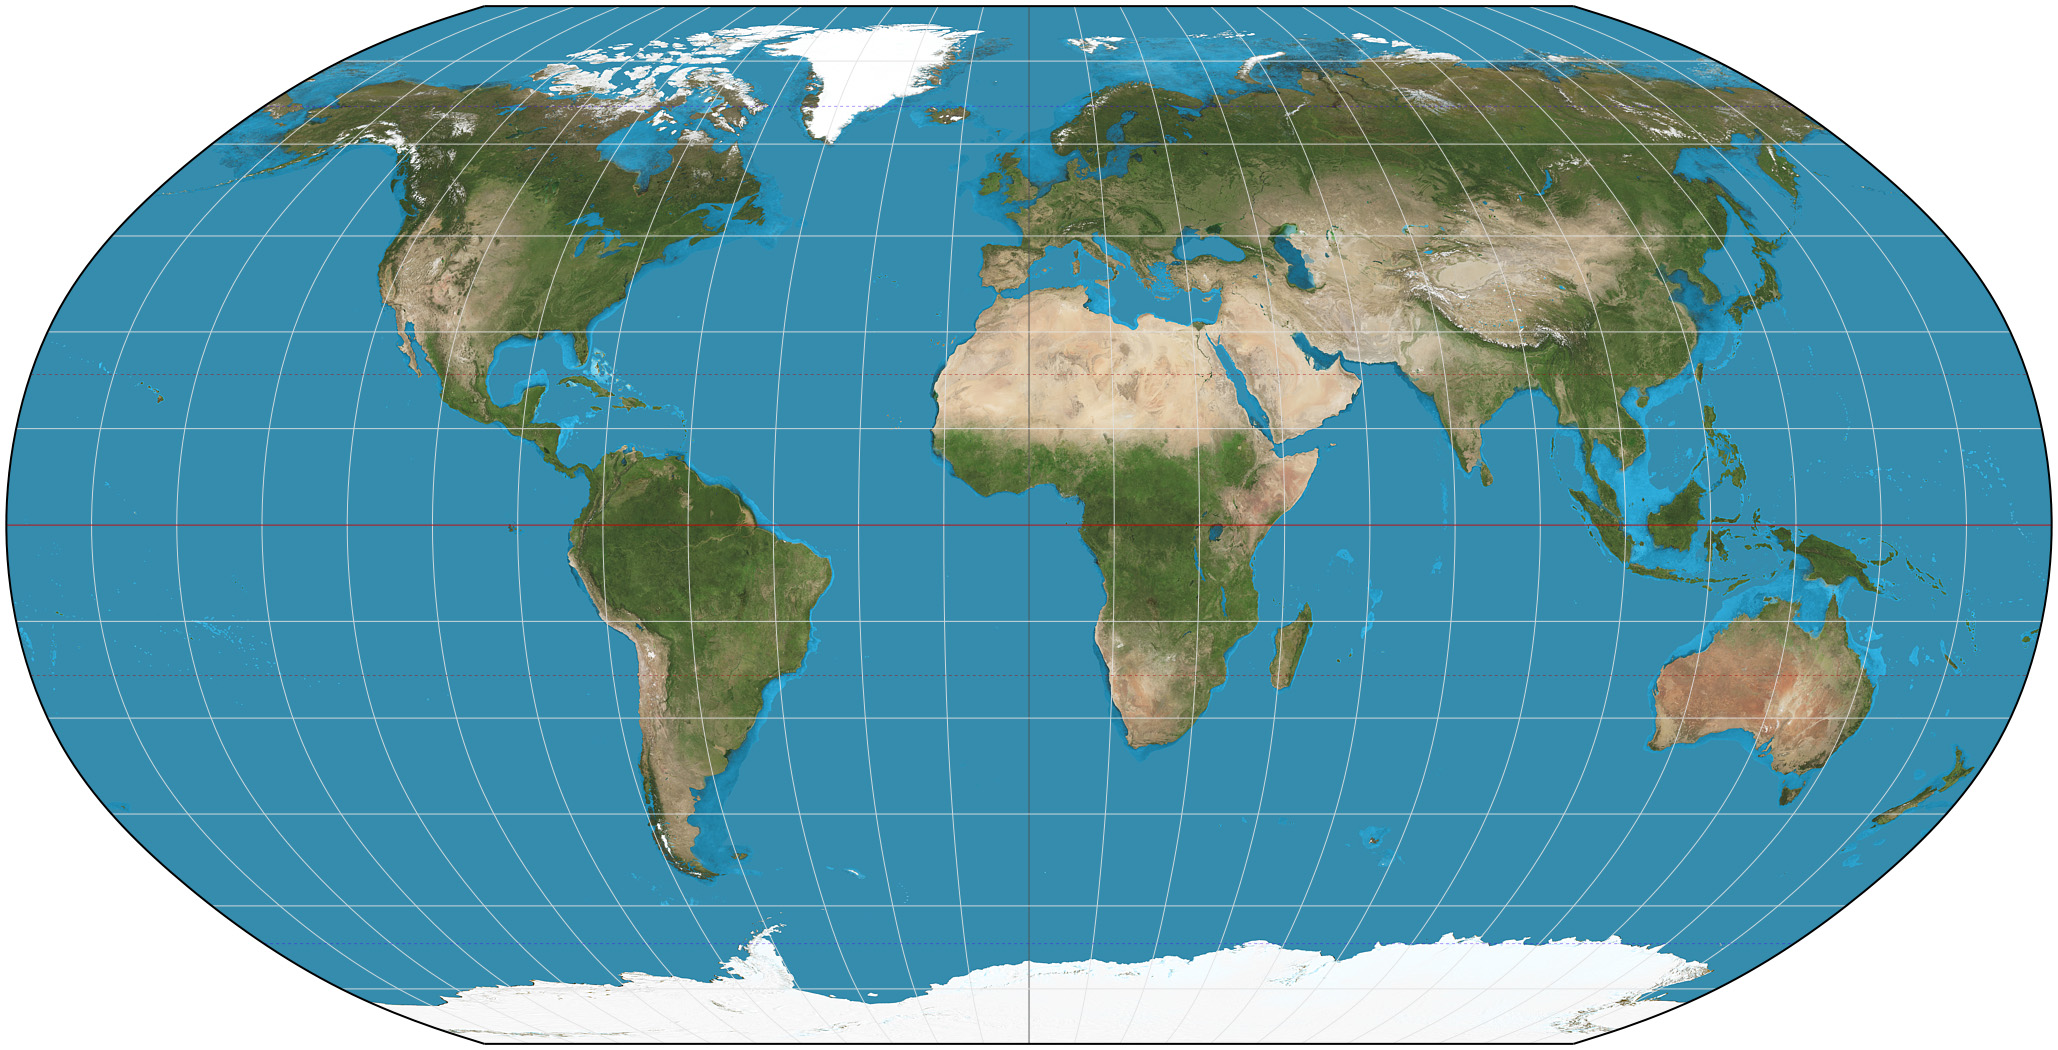 The world, Robinson projection (Wiki)